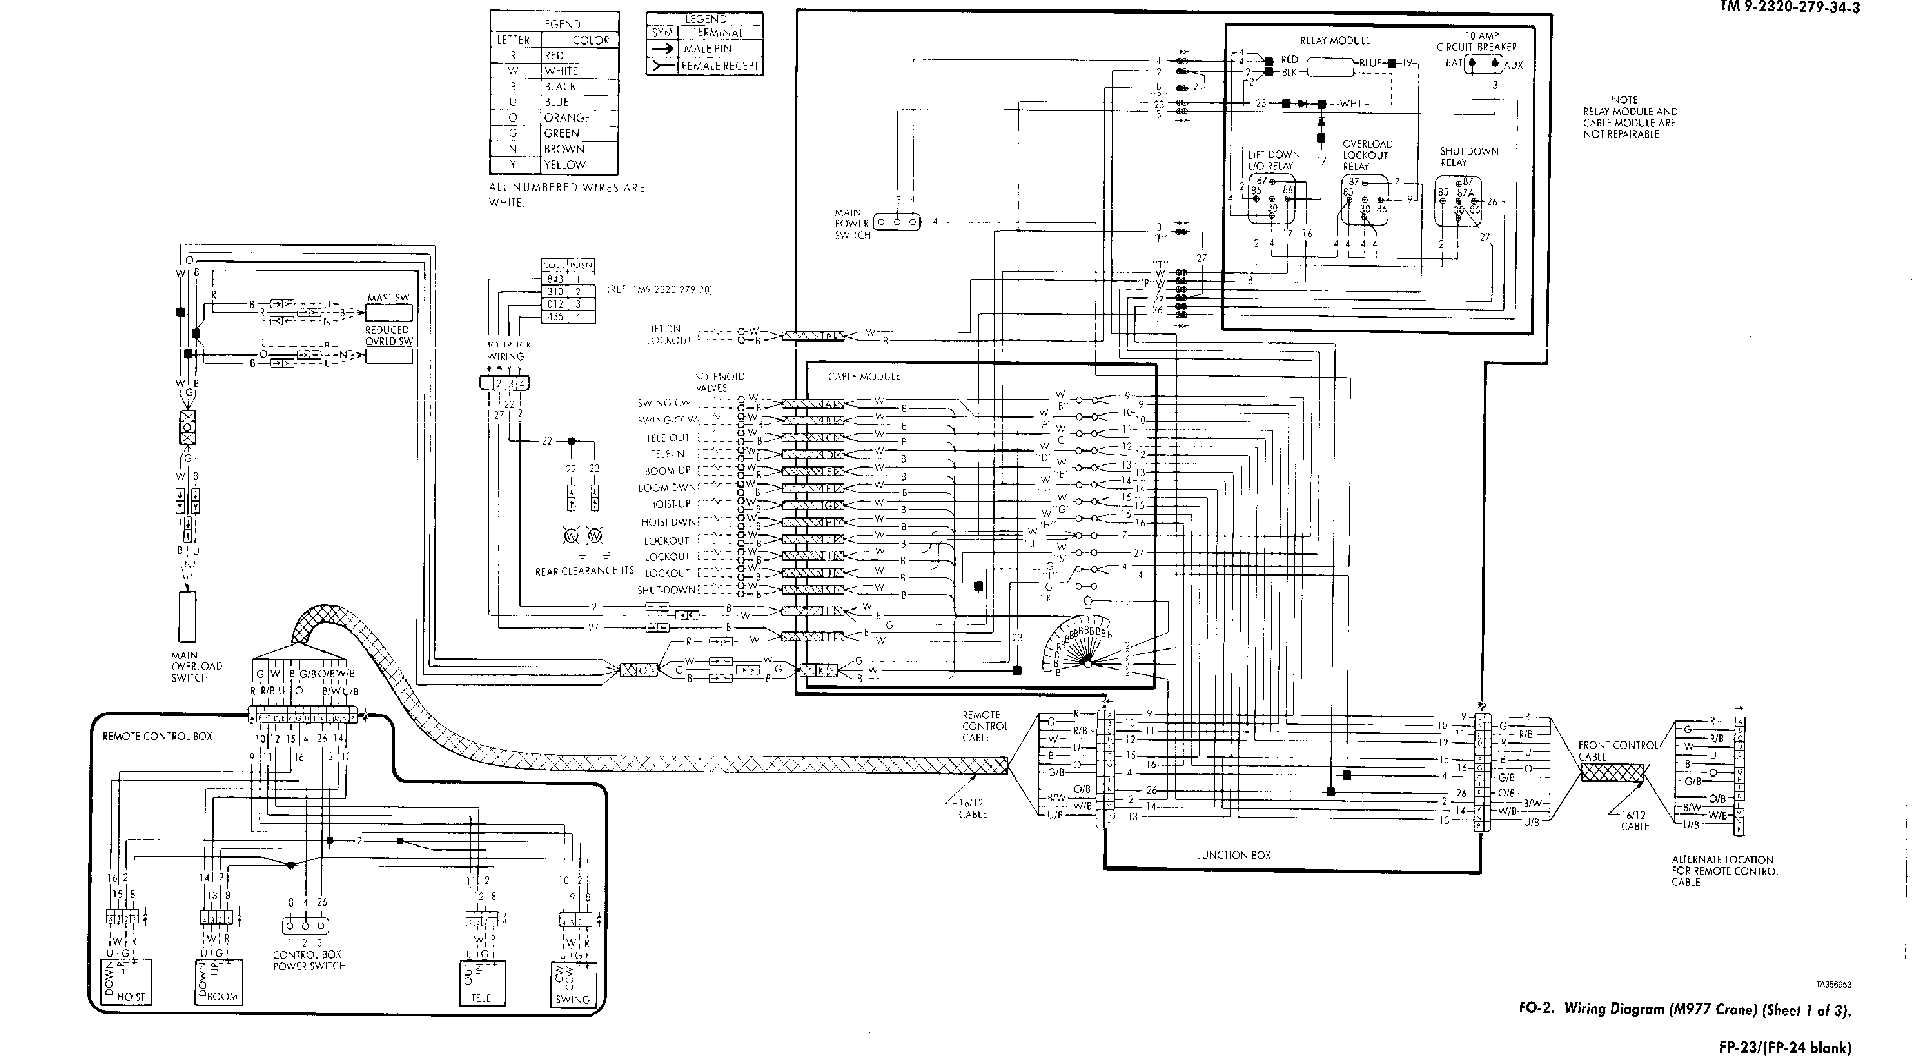 Fo 2 Wiring Diagram M977 Crane Sheet 1 Of 3